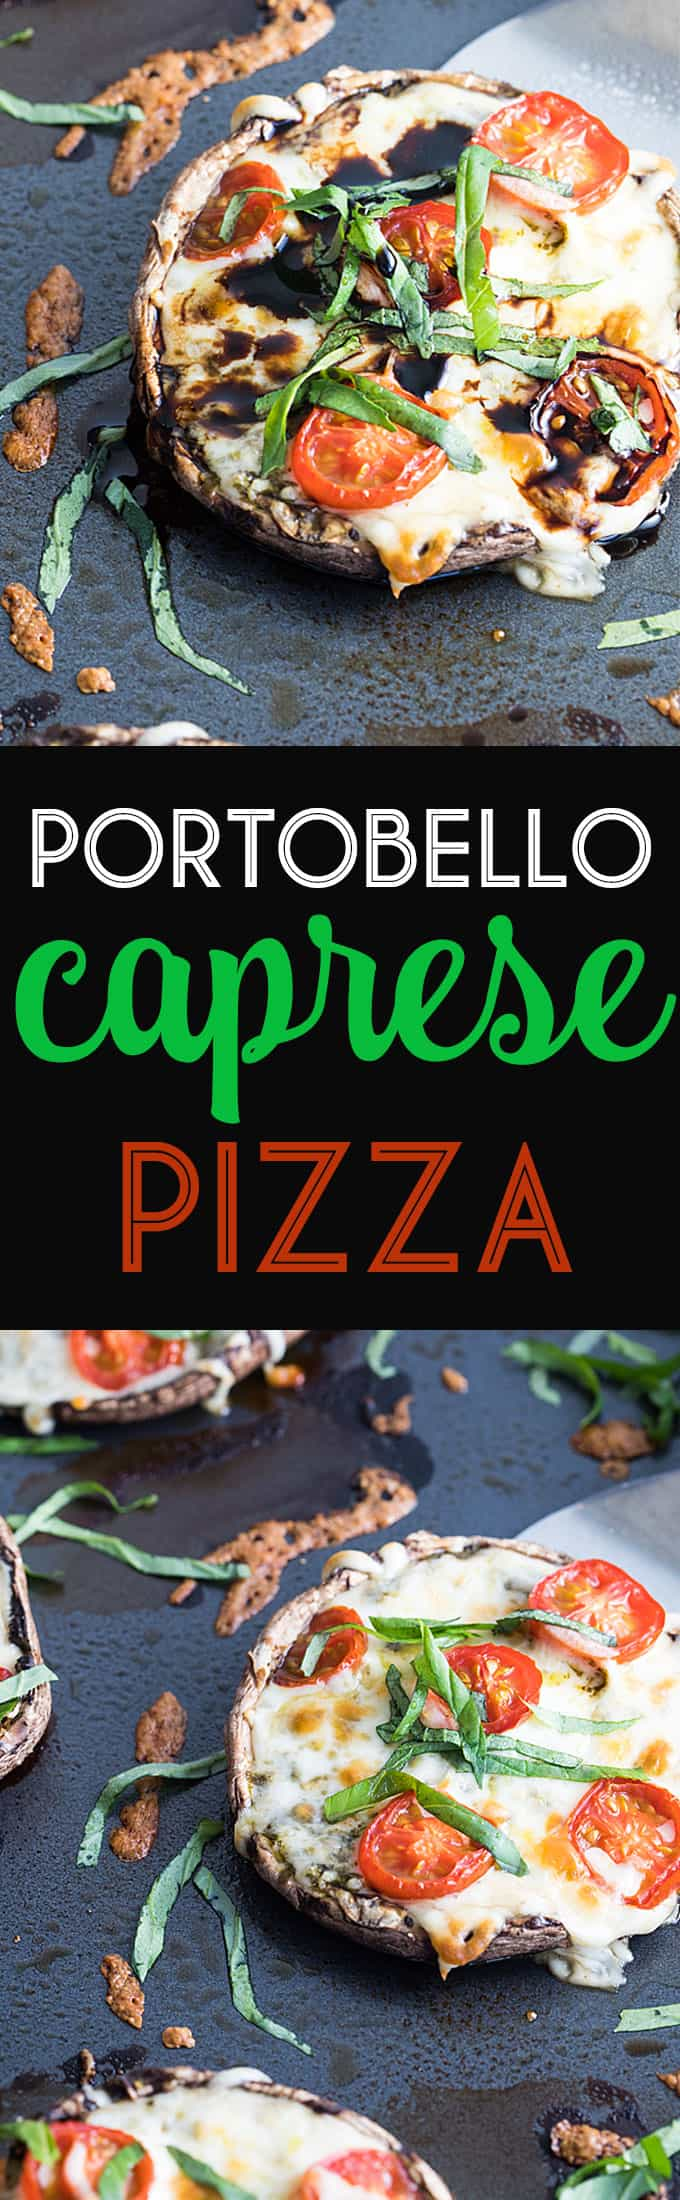 A two image vertical collage of portobello caprese pizzas with overlay text in the center.